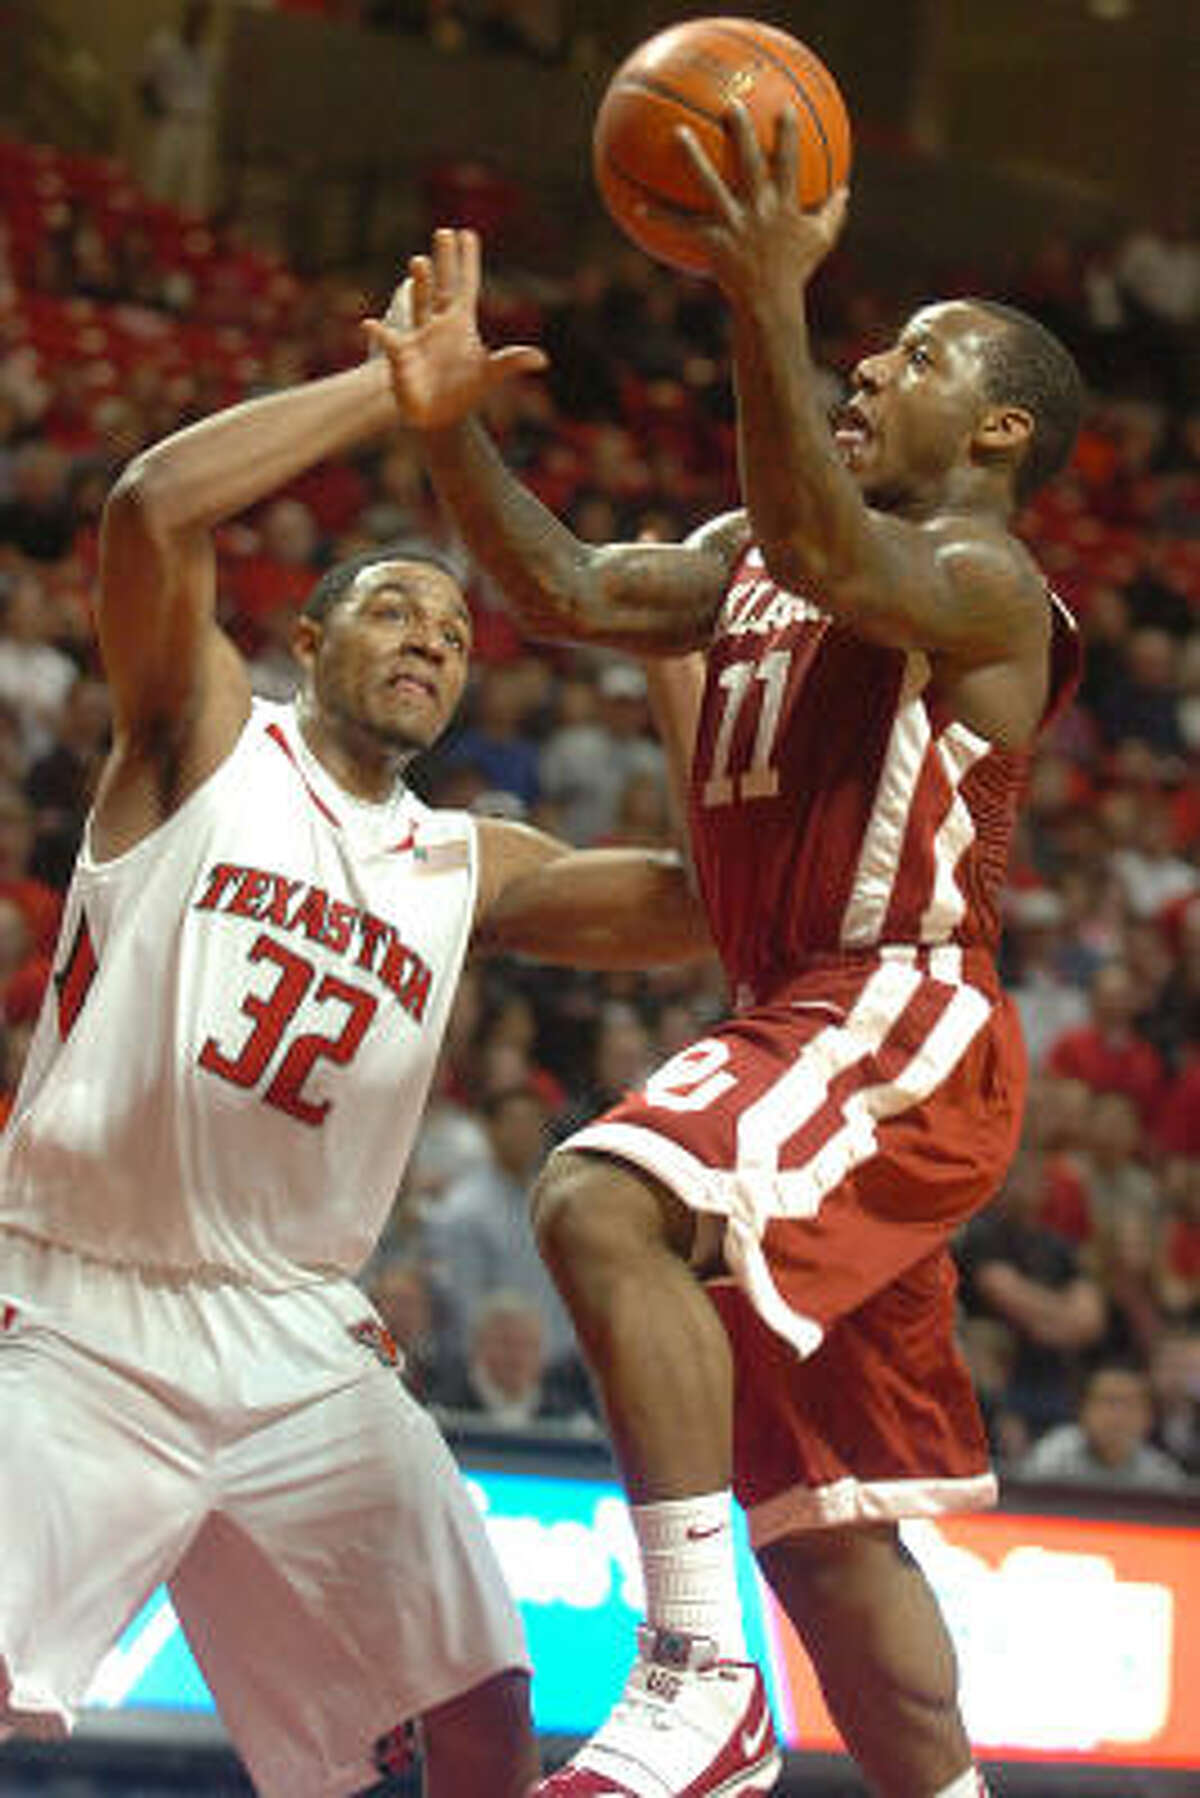 2008: Tommy Mason-Griffin, Madison Started 27 games and averaged 14.1 points and 4.9 assists en route to All-Big 12 third team honors as a freshman at Oklahoma. Left the Sooners after one season to pursue a professional playing career.